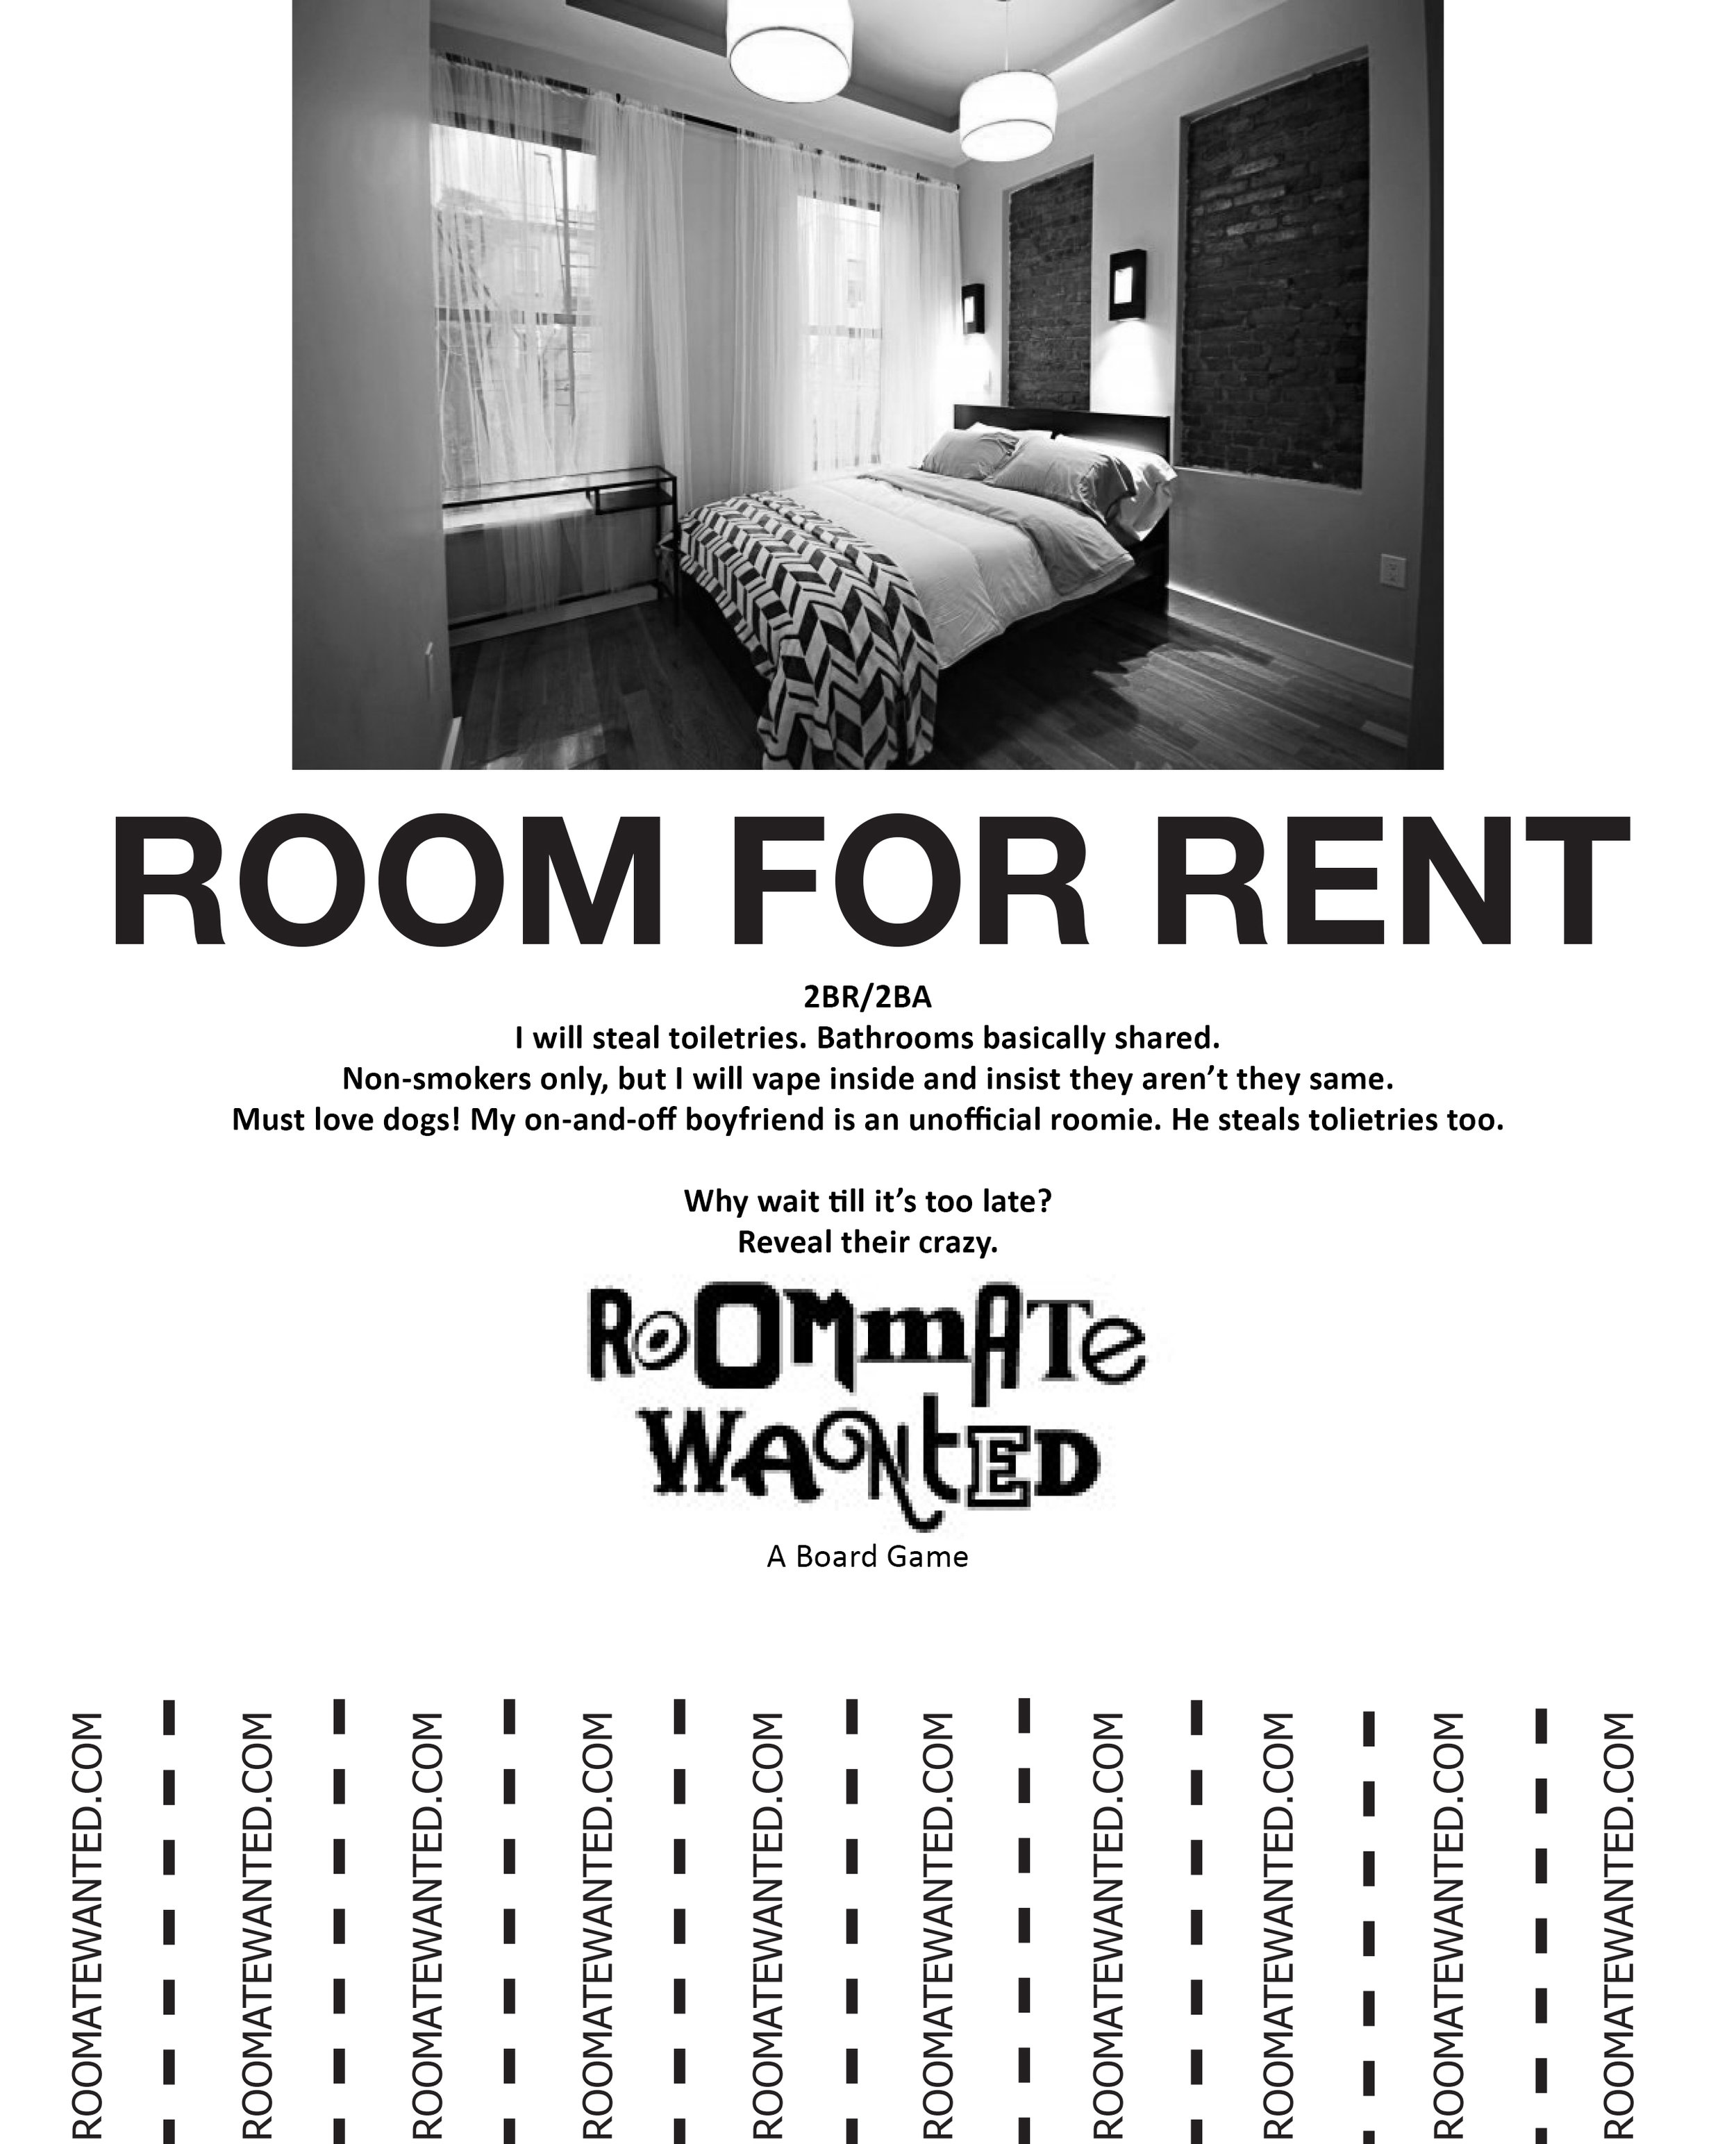 Roommates wanted ads 3.jpg